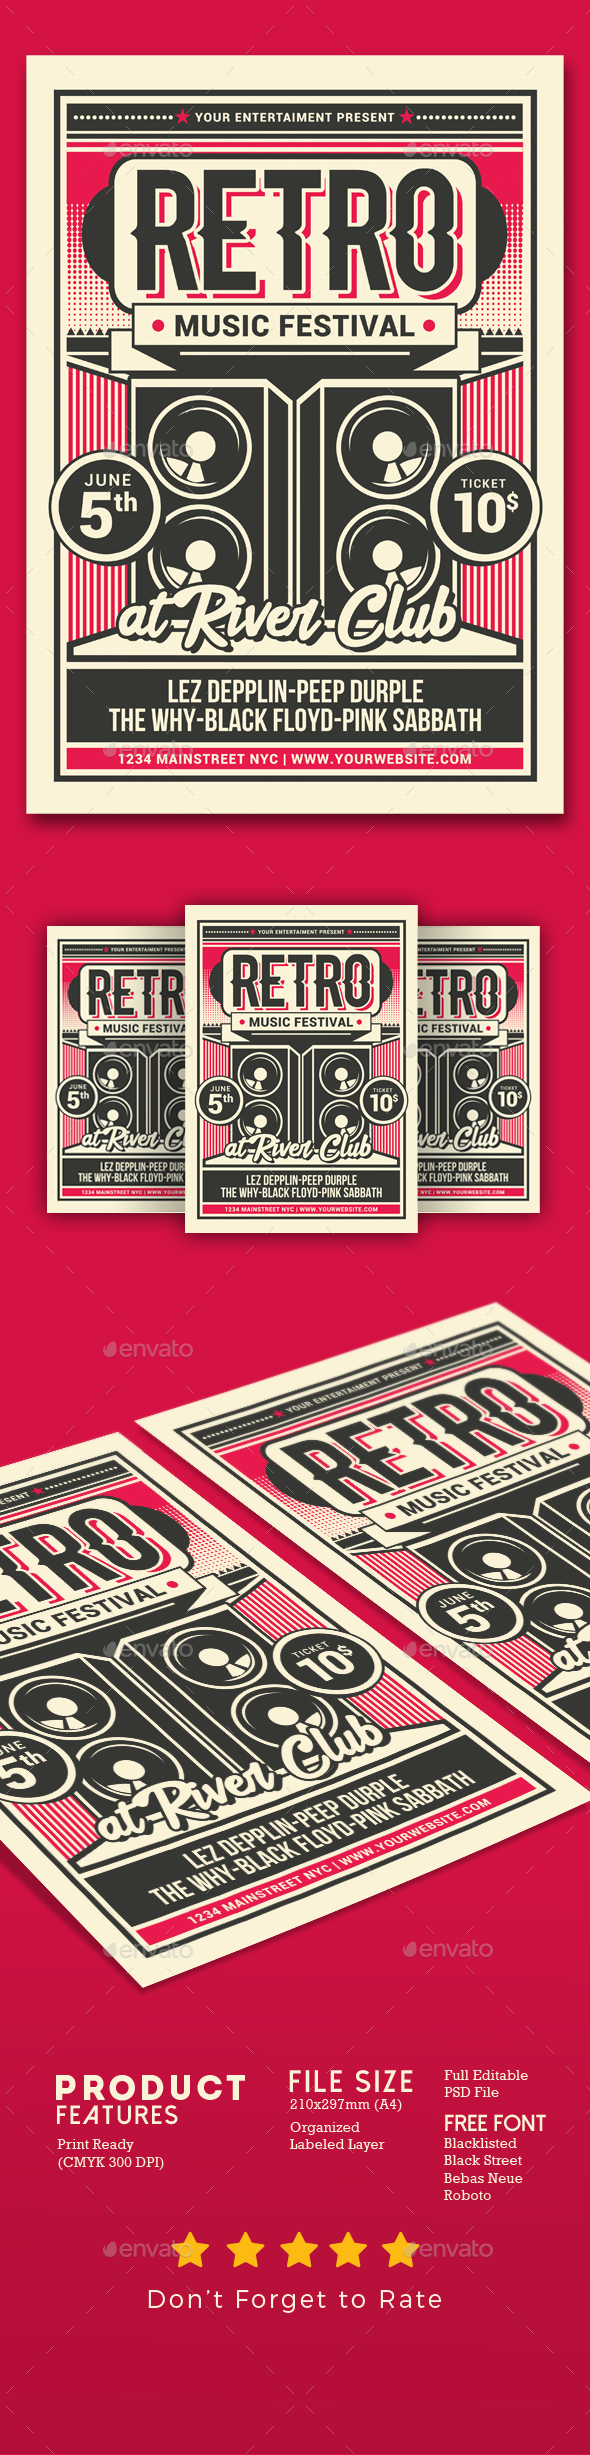 Flyers PSD – Retro Tune Festival – Download